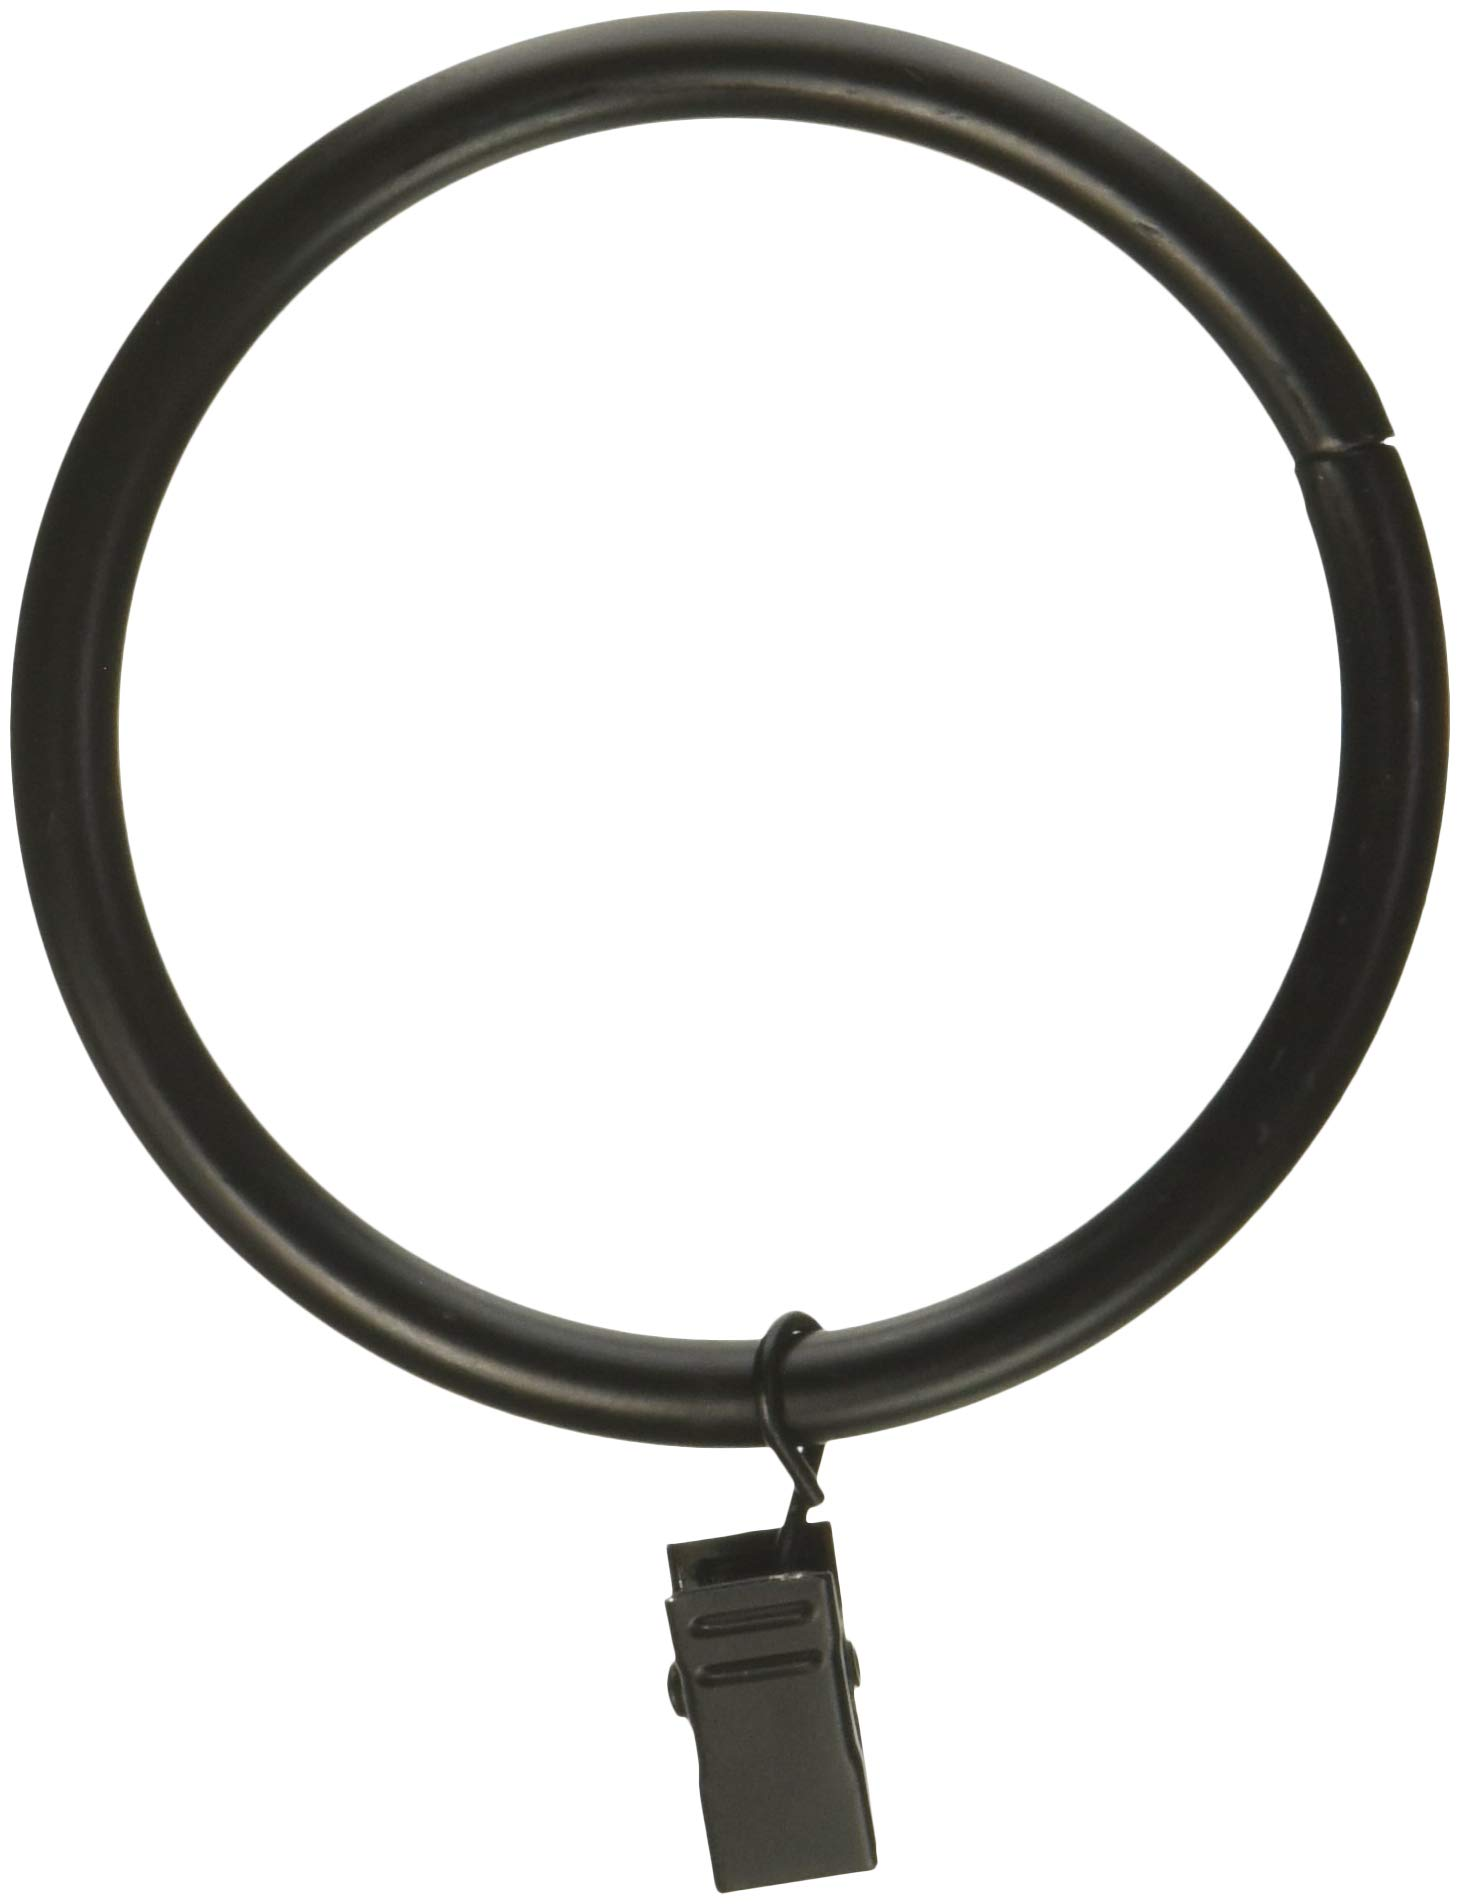 Rod Desyne 2-1/2 inch Curtain Rings with Clip, Black